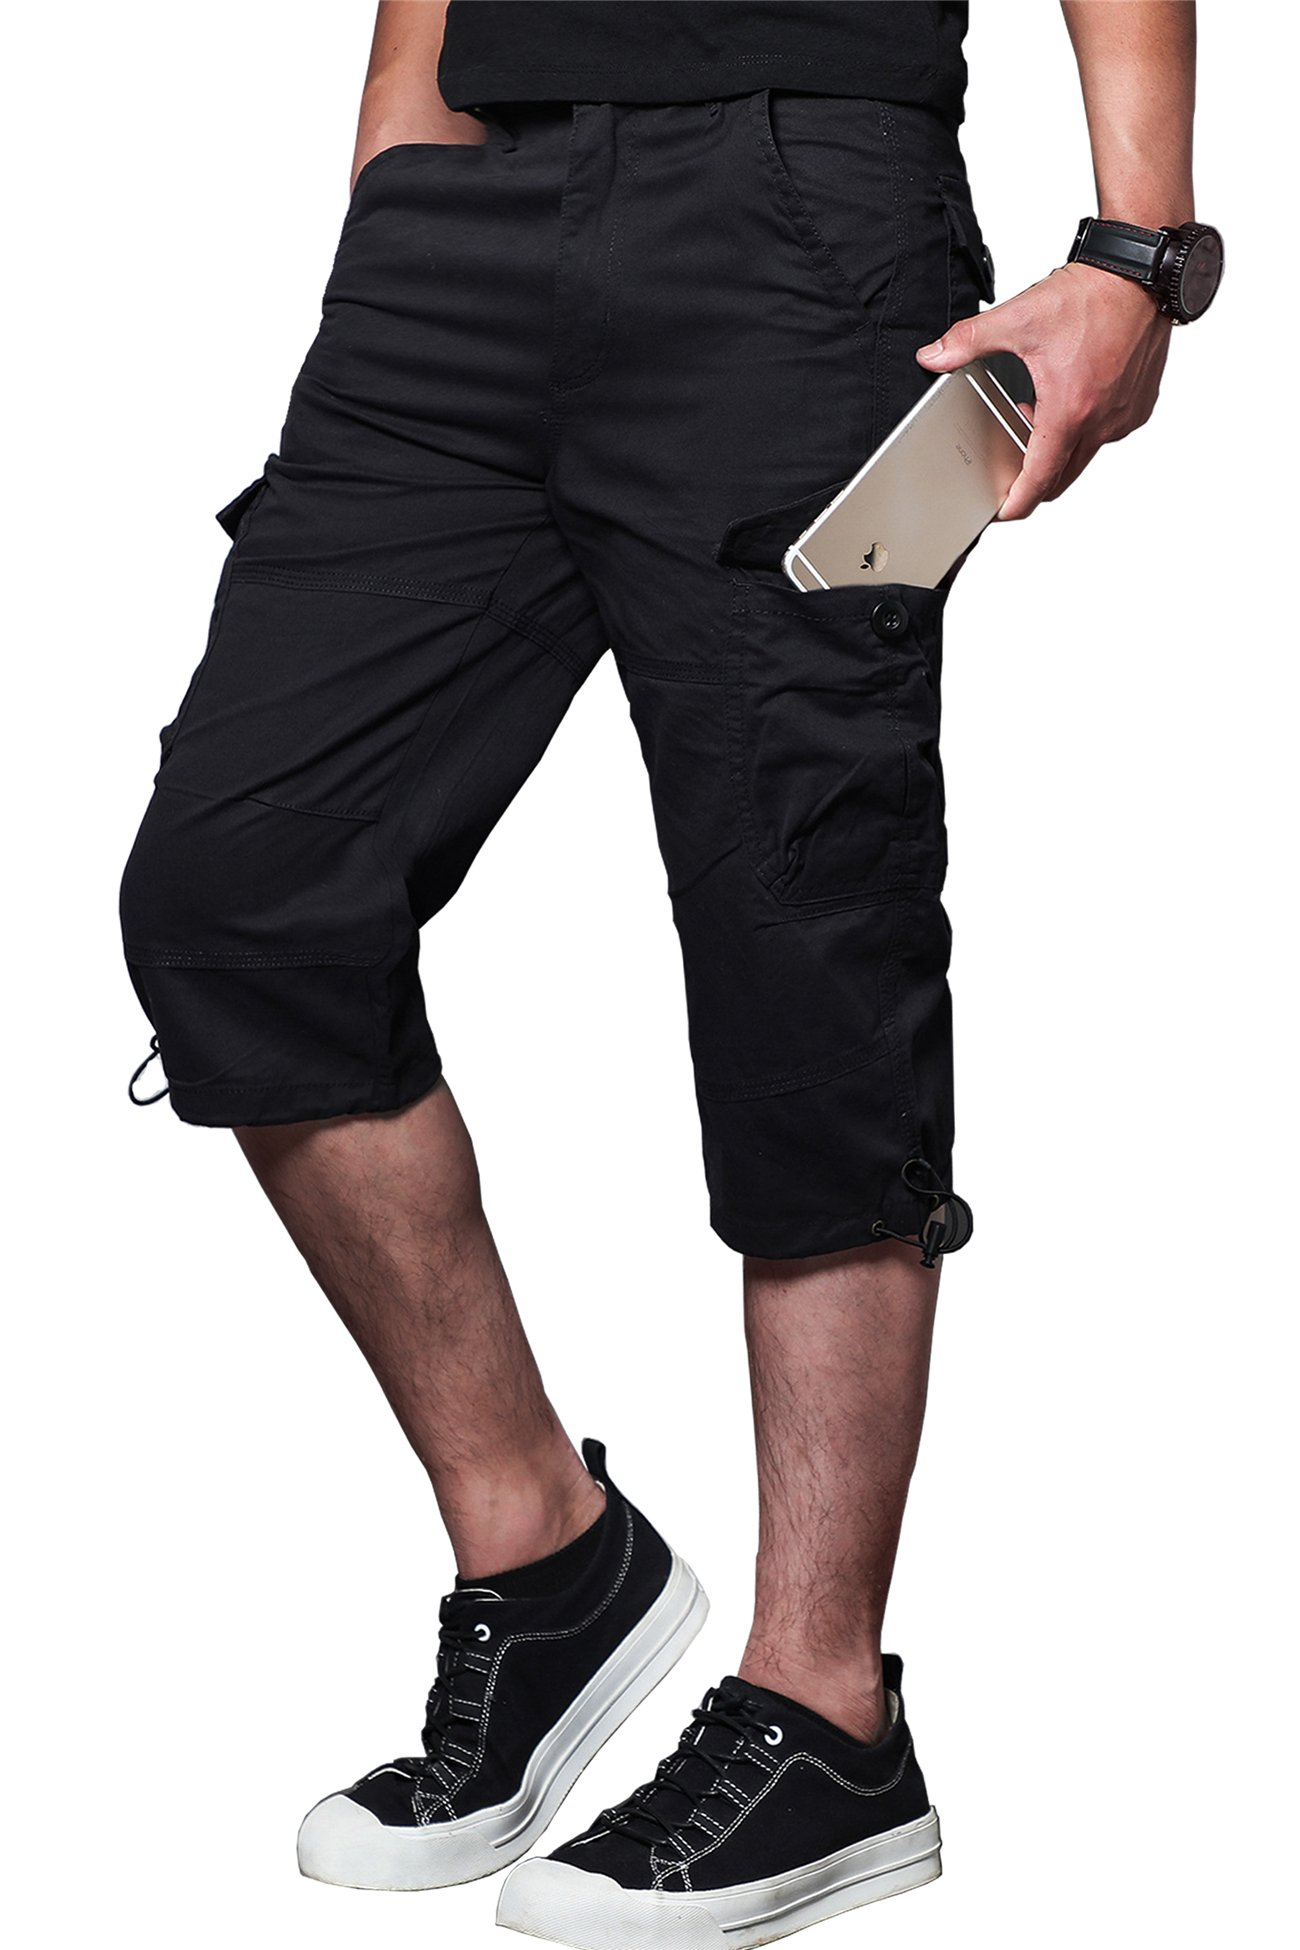 M Society Cargo Shorts Tactical Cargo Shorts Flex Cargo Shorts for Men with Multi-Pocket